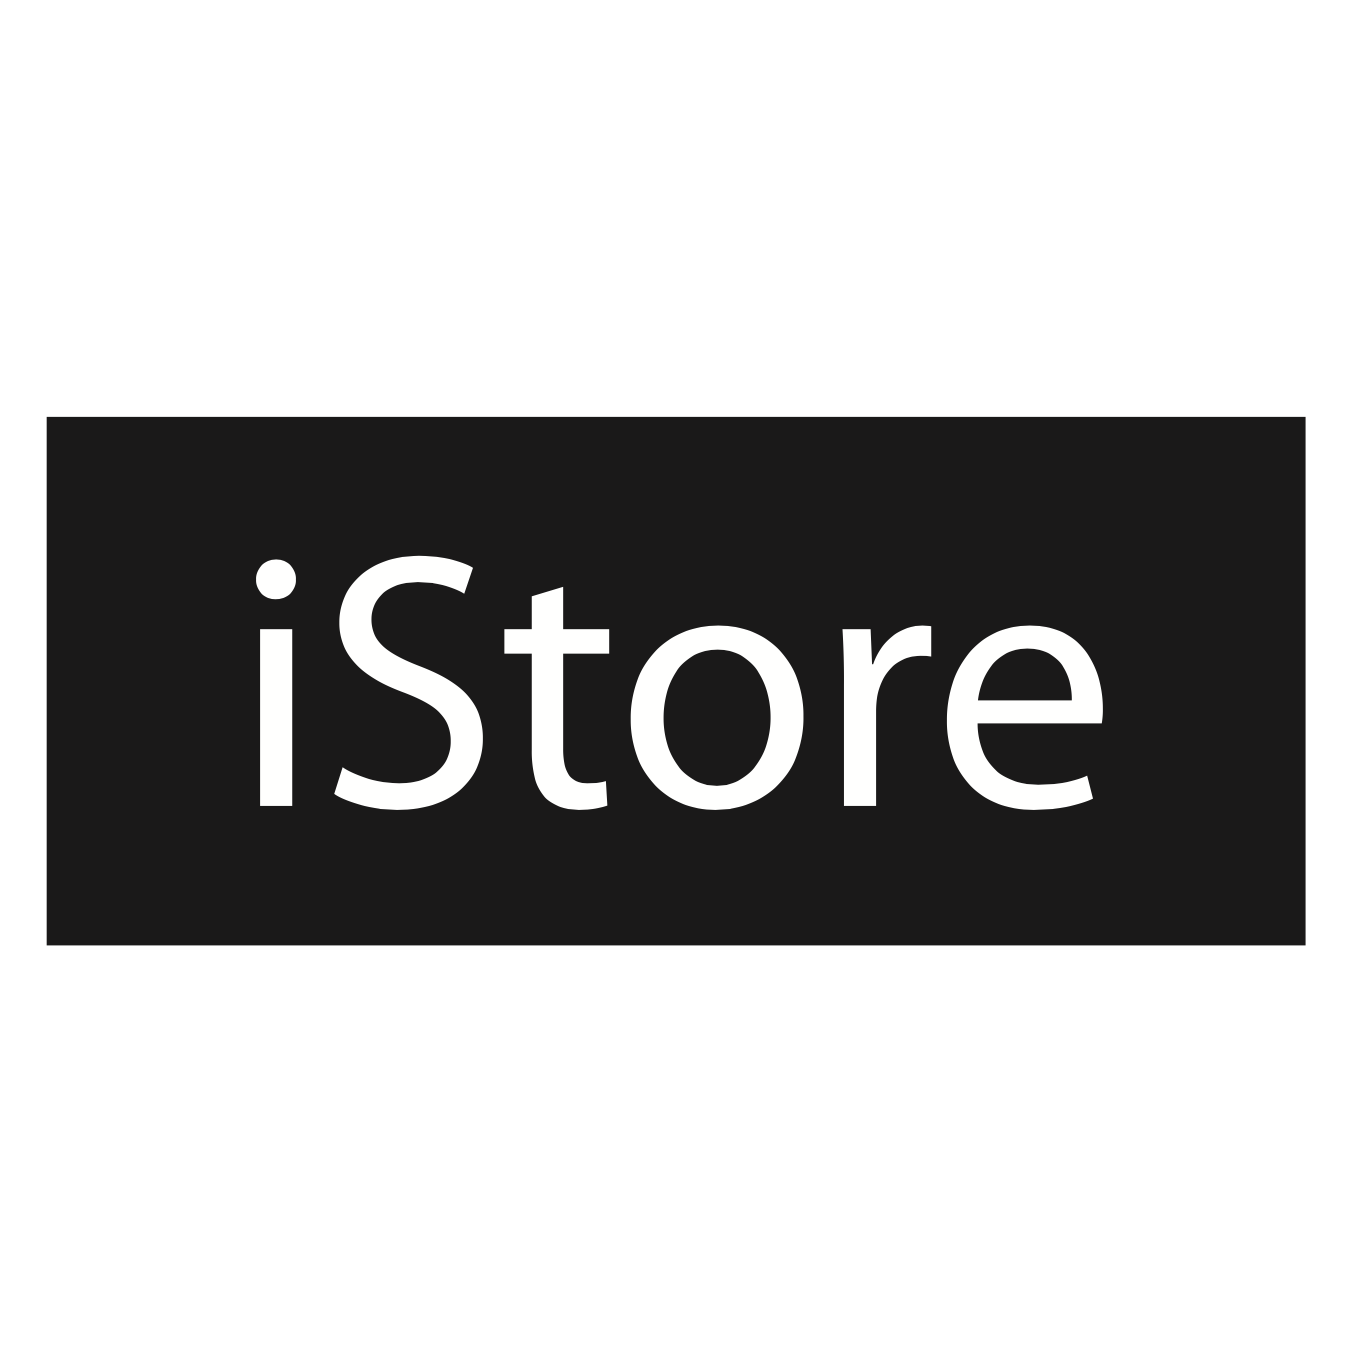 Get a new iPhone every year at iStore.